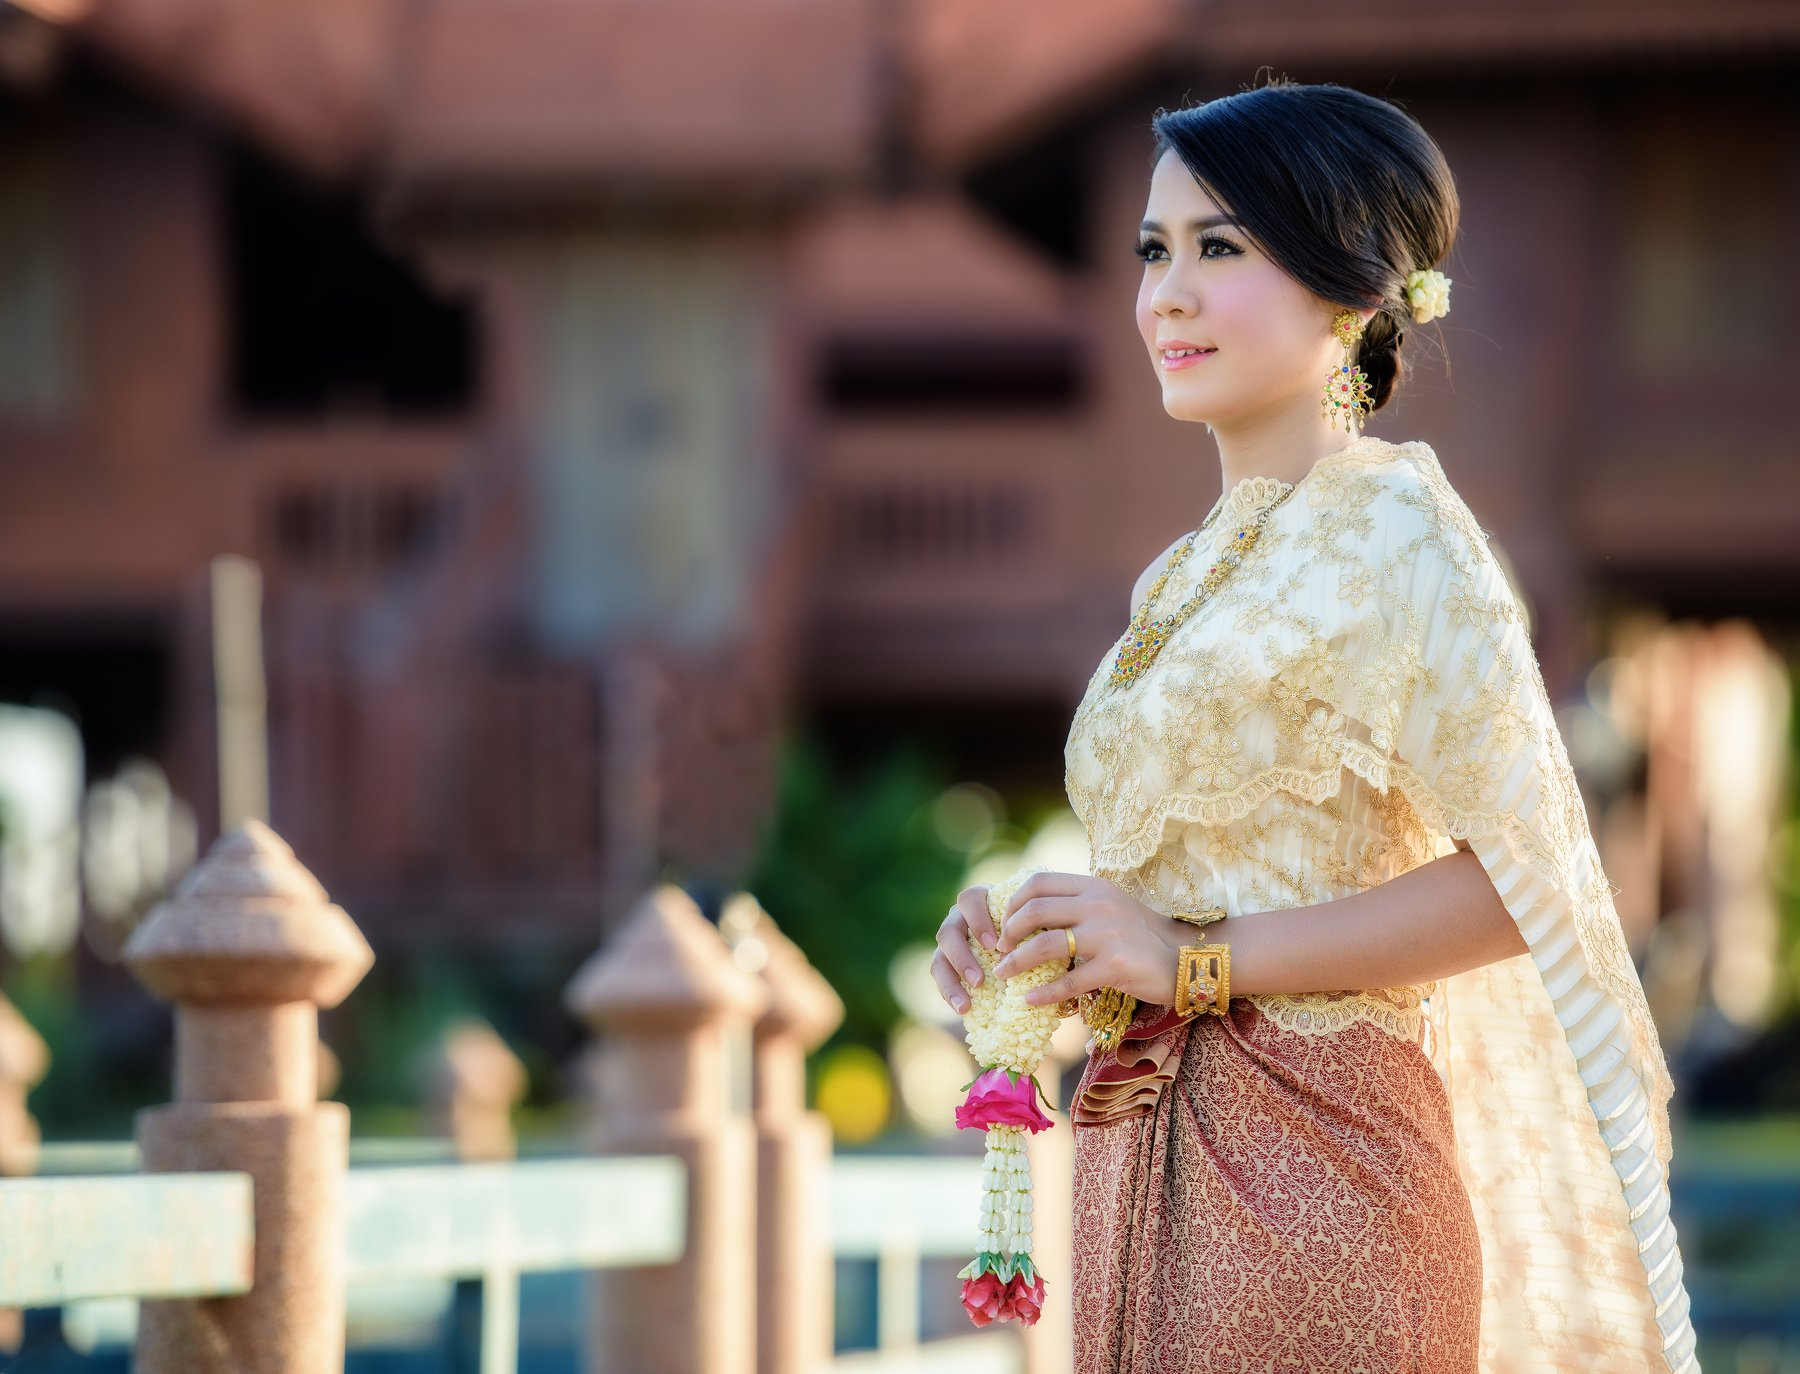 thai; woman; thailand; girl; outdoor; greeting; charming; attractive; ornament; cloth; jewelry; flower; tender; silk; culture; enchantress; buddhist; folk; dance; female; fashion; polite; fabric; portrait; elegant; outfit; nice; tradition; colorful; forma, Sasin Tipchai